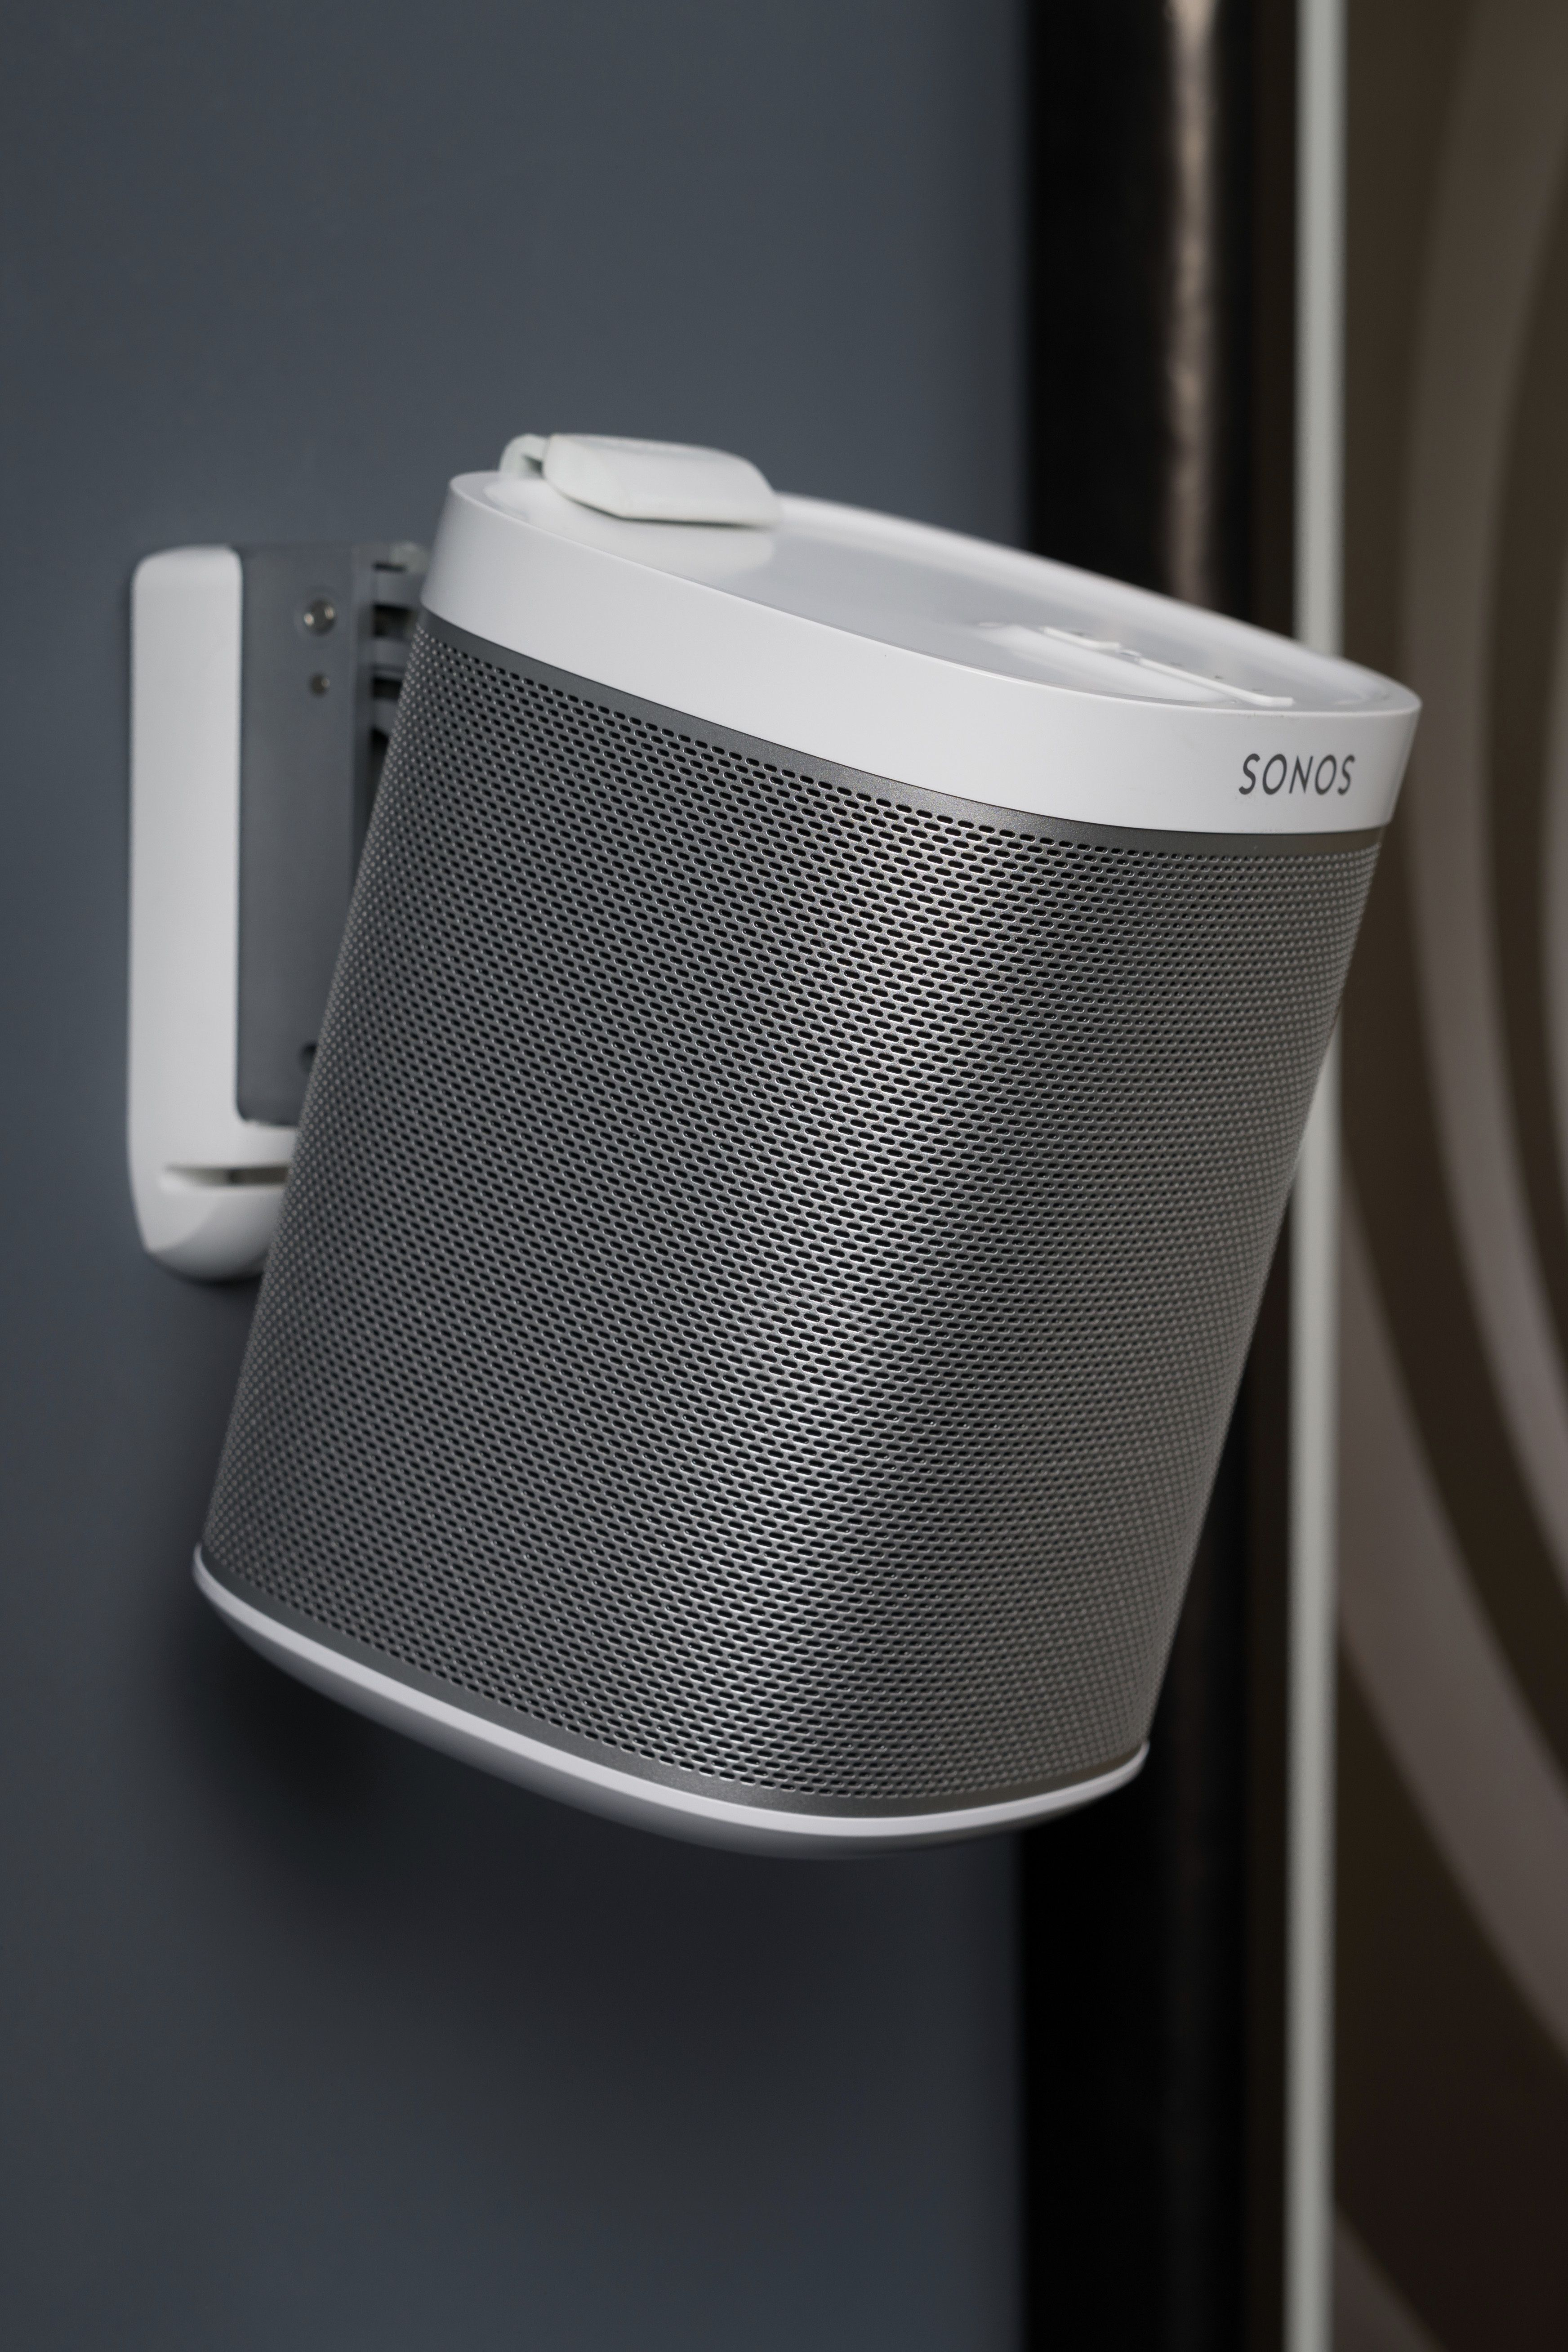 Wall Mount Your Sonos Play 1 Speaker With Our Premium Bespoke Bracket Looks Great In Any Home Its Neat And Stylish Design